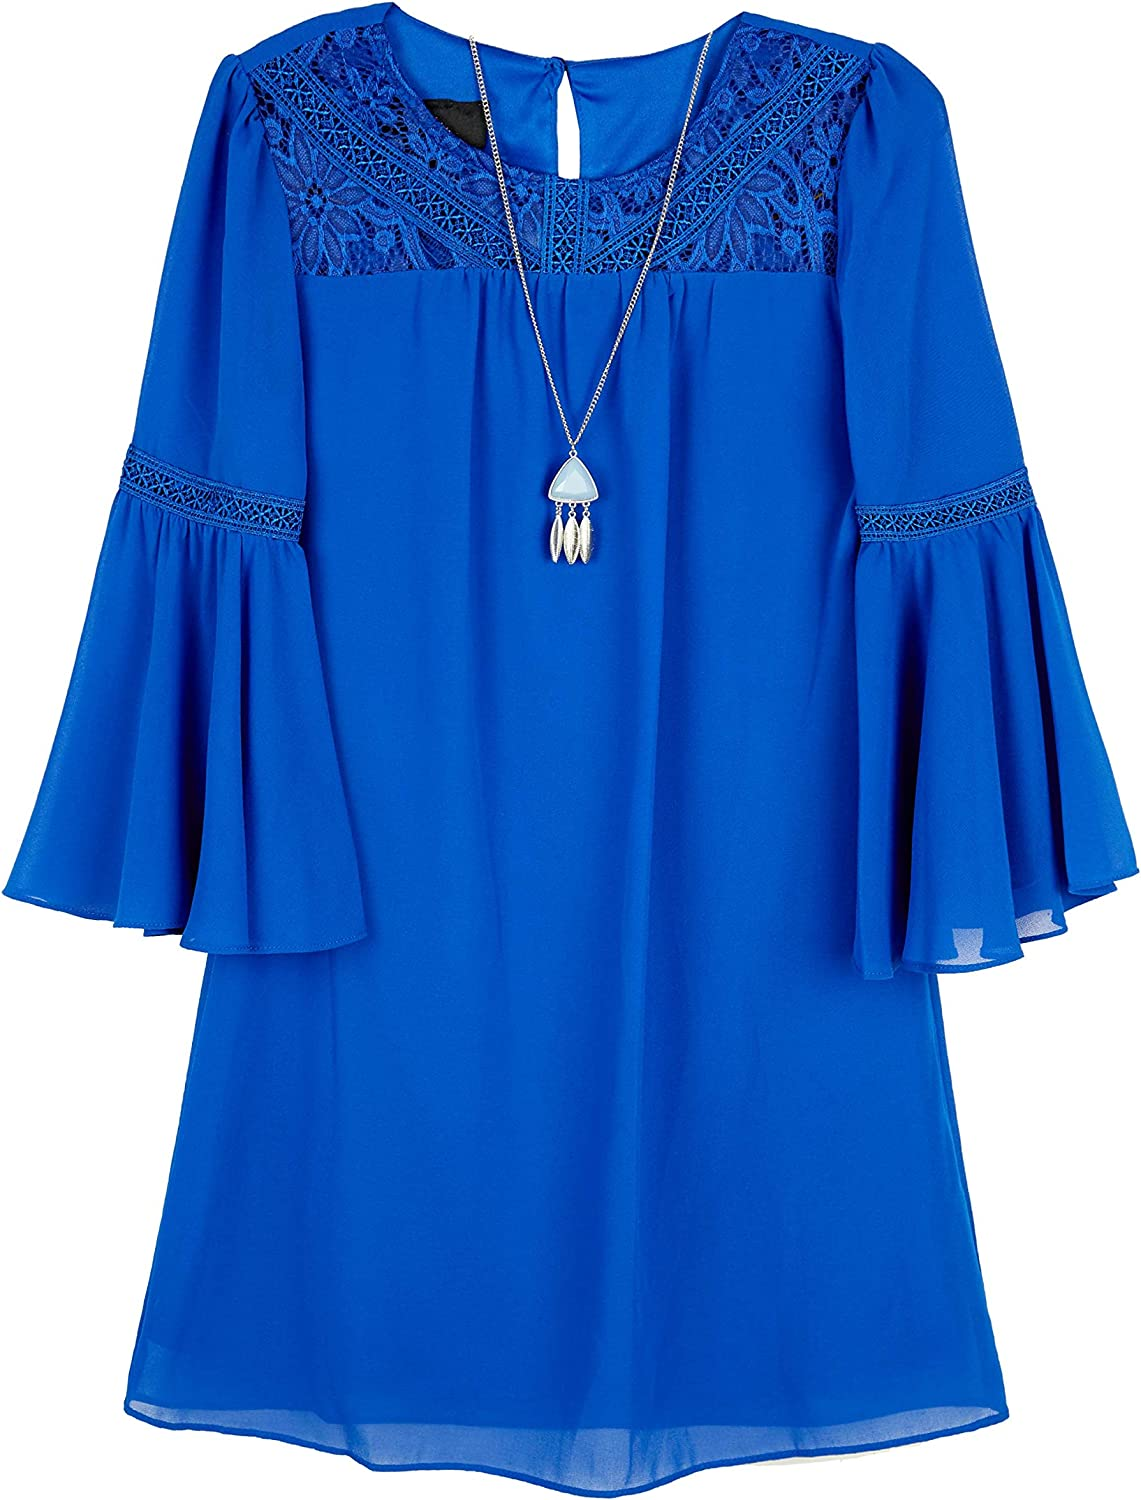 Amy Byer Girls' Bell Sleeve A-line Dress with Lace